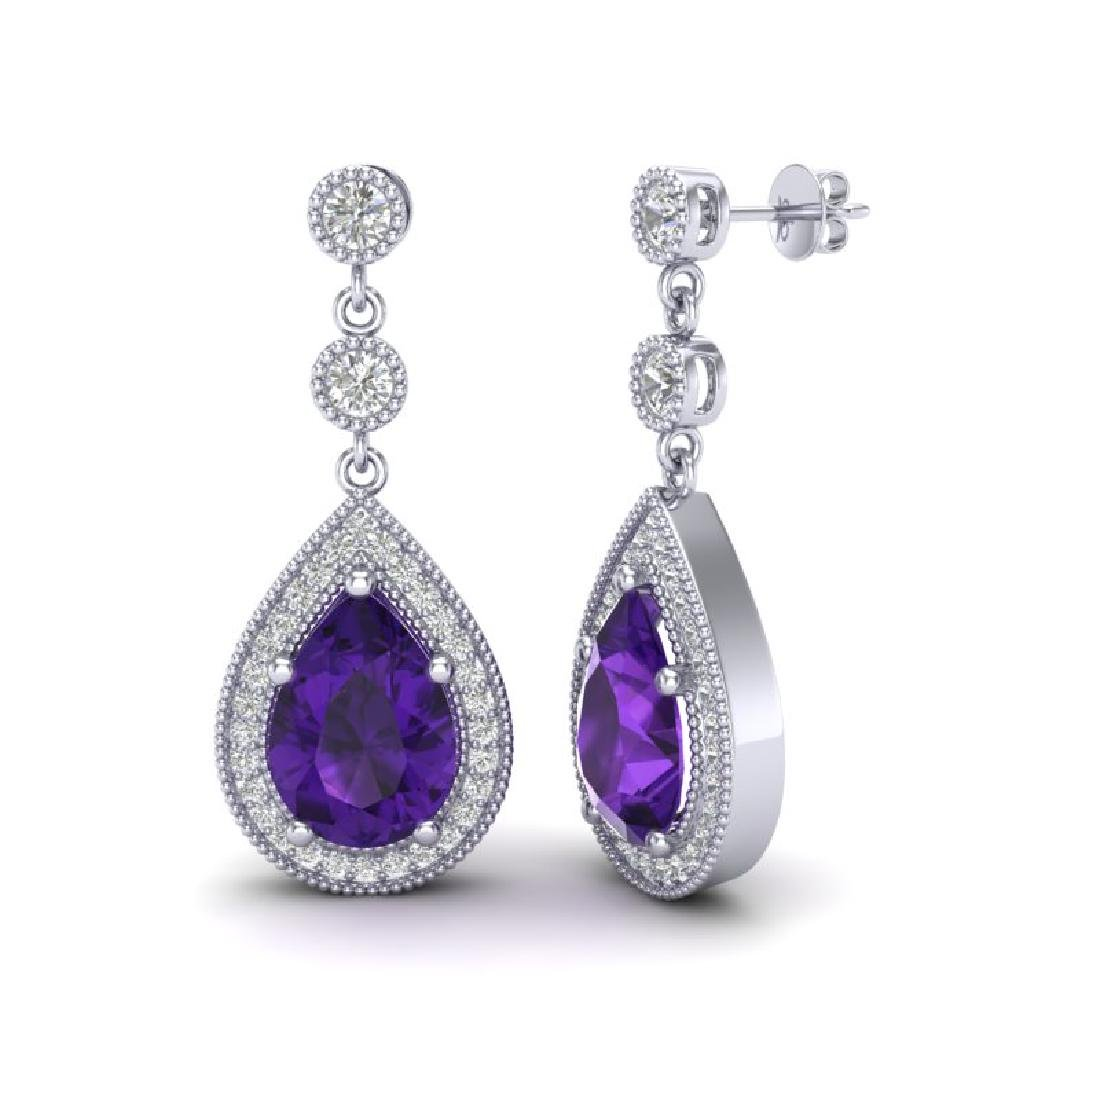 4.50 CTW Amethyst & Micro Pave VS/SI Diamond Earrings - 2